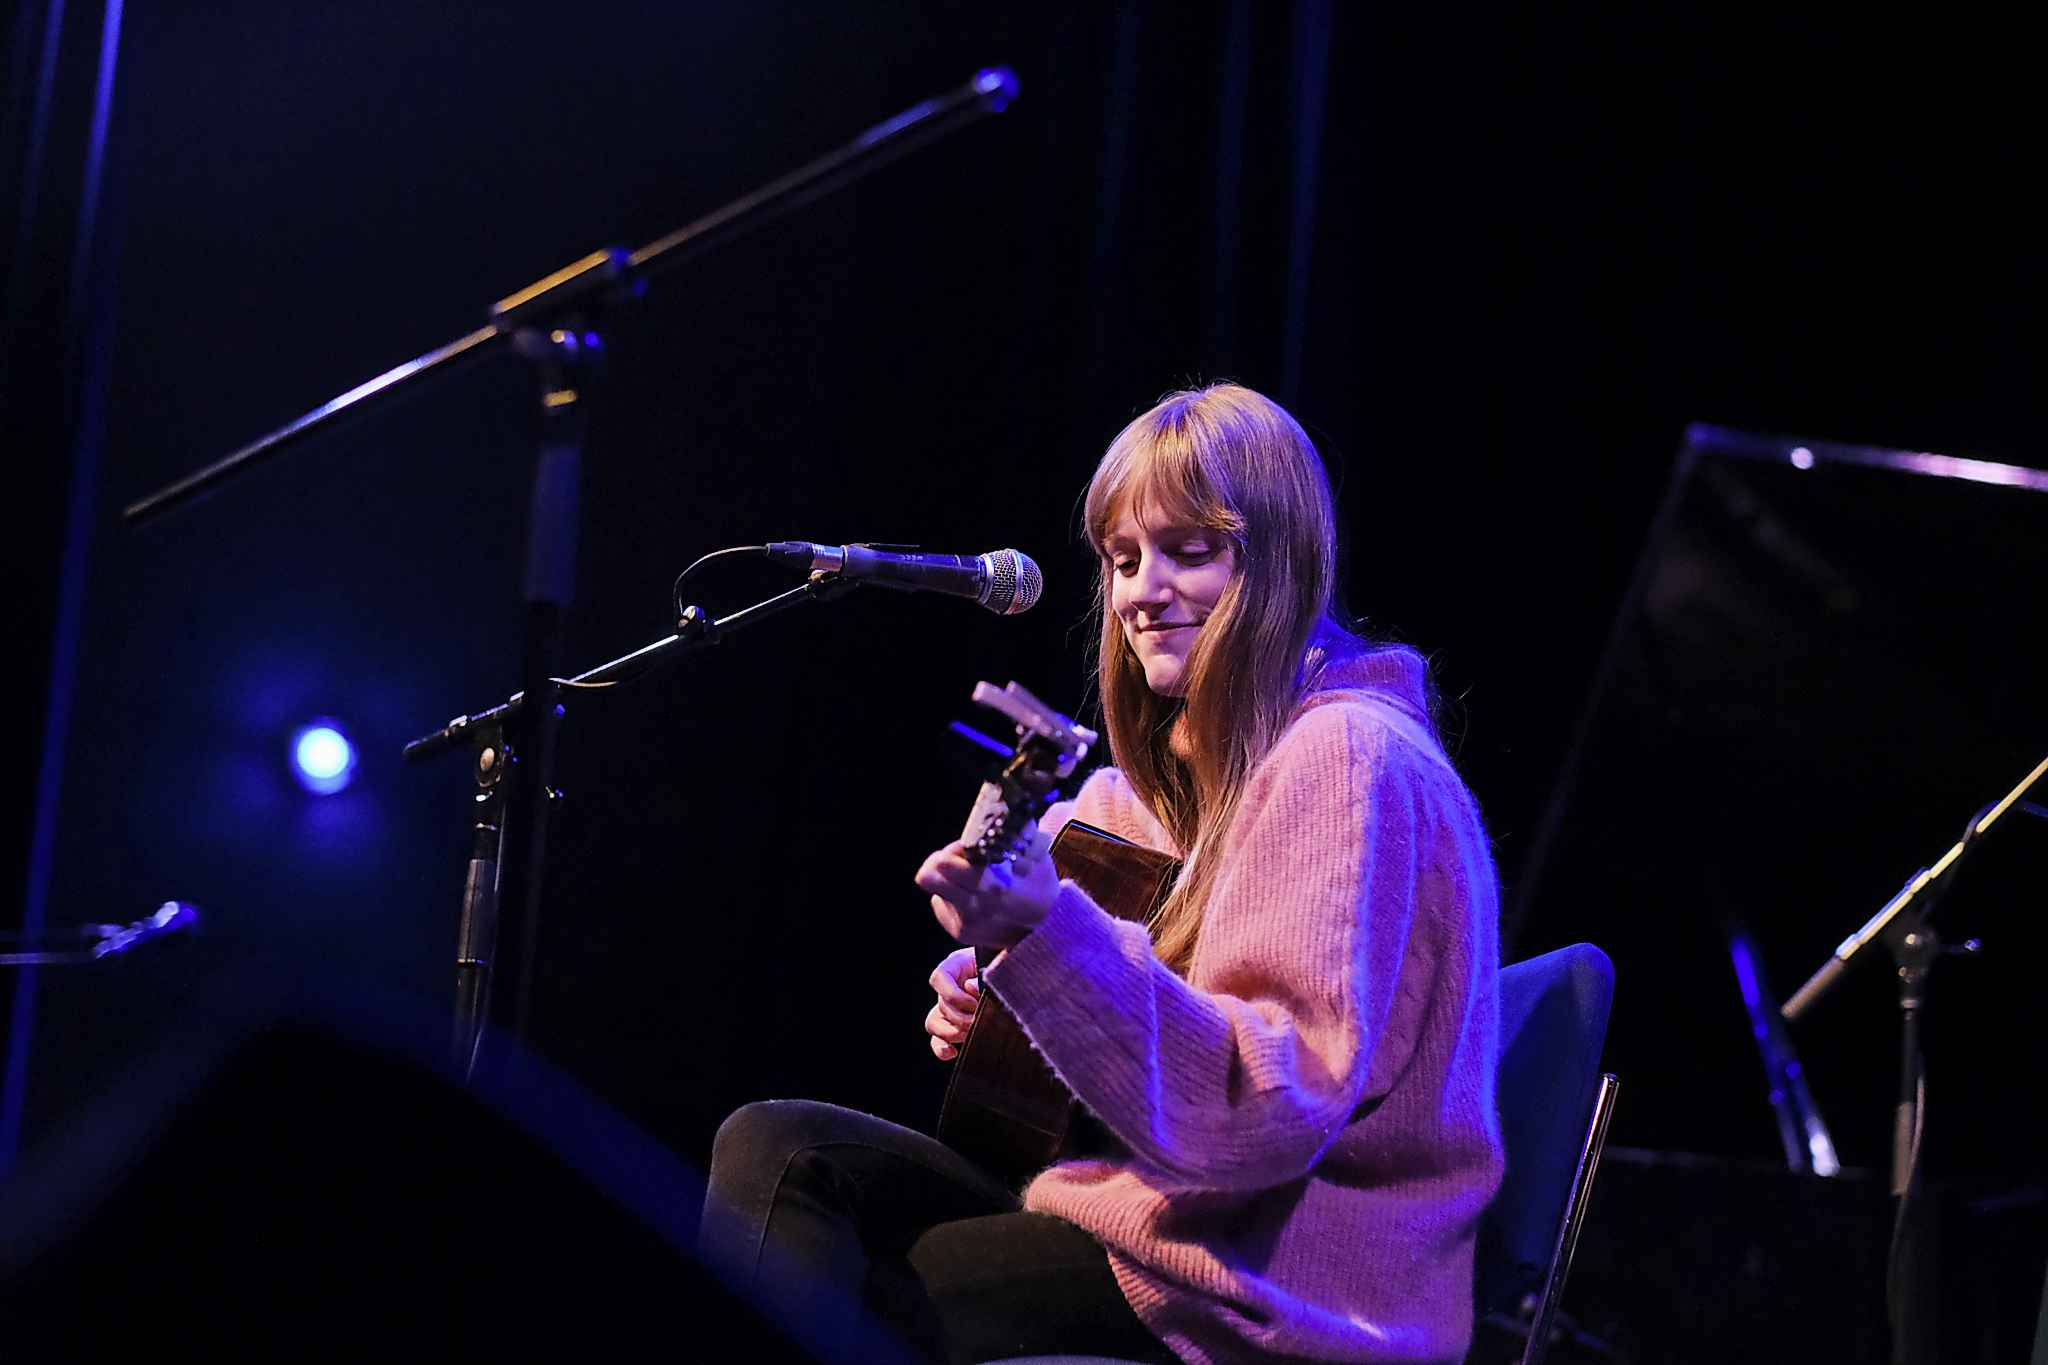 Sophie Stevens' last performance was opening for William Prince during his third consecutive sold-out show at the West End Cultural Centre. (Mike Sudoma / Winnipeg Free Press files)